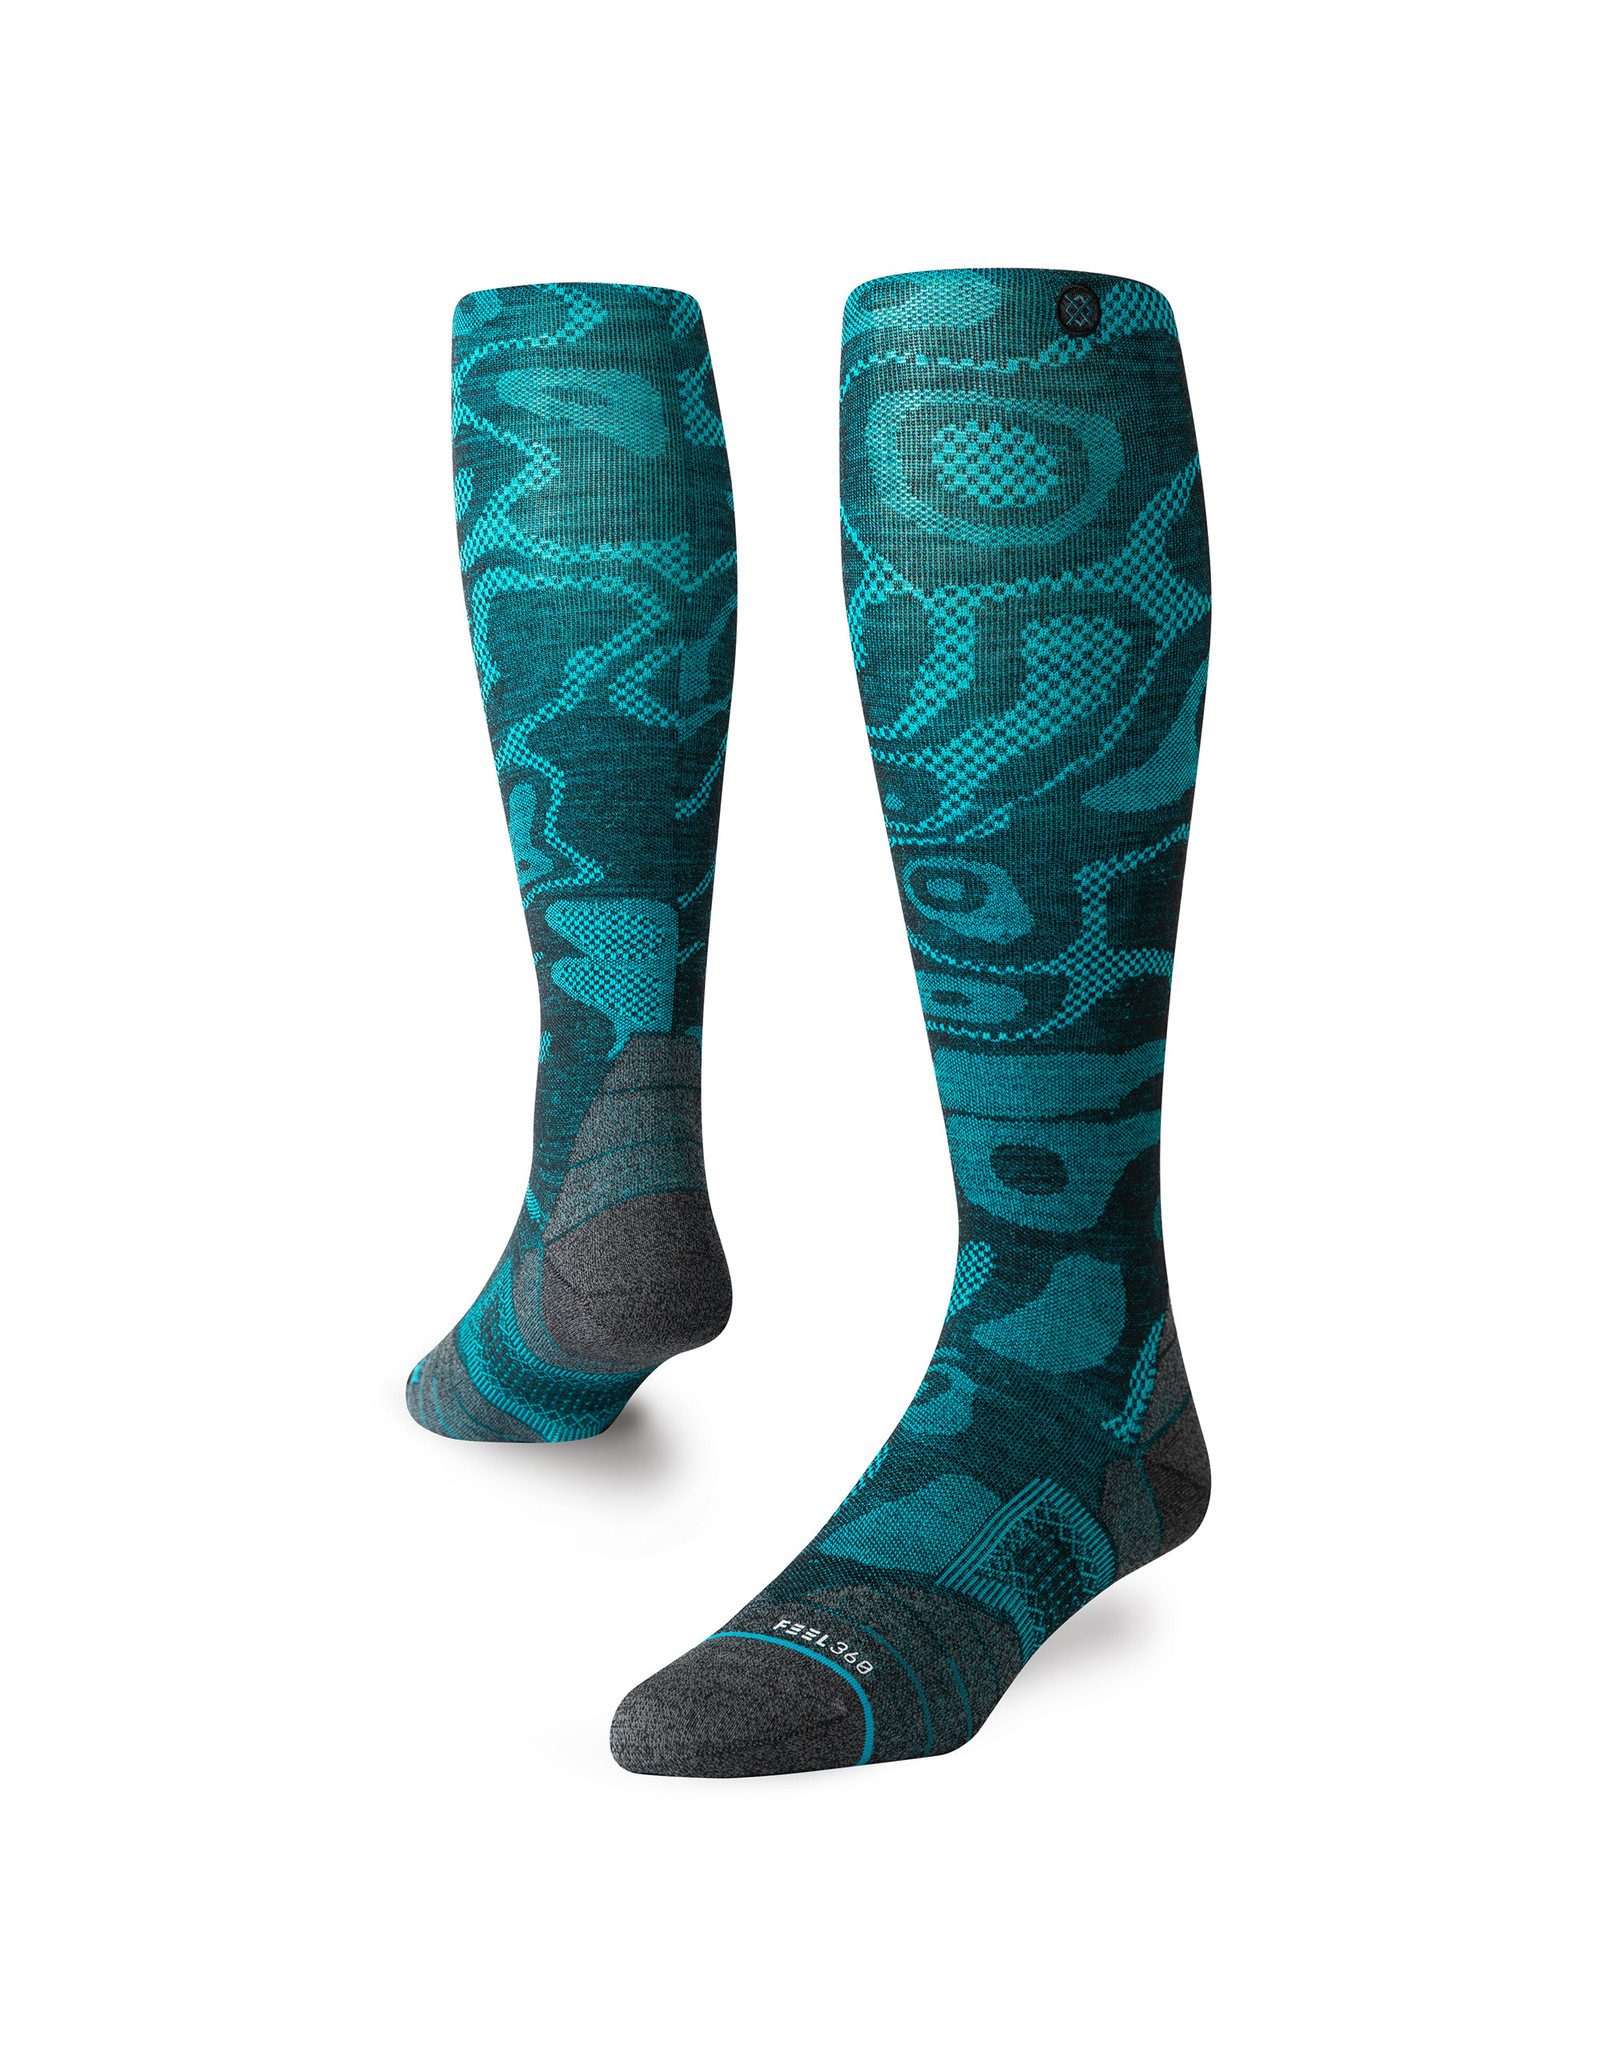 Stance Socks Snow Ultralight Men's Socks